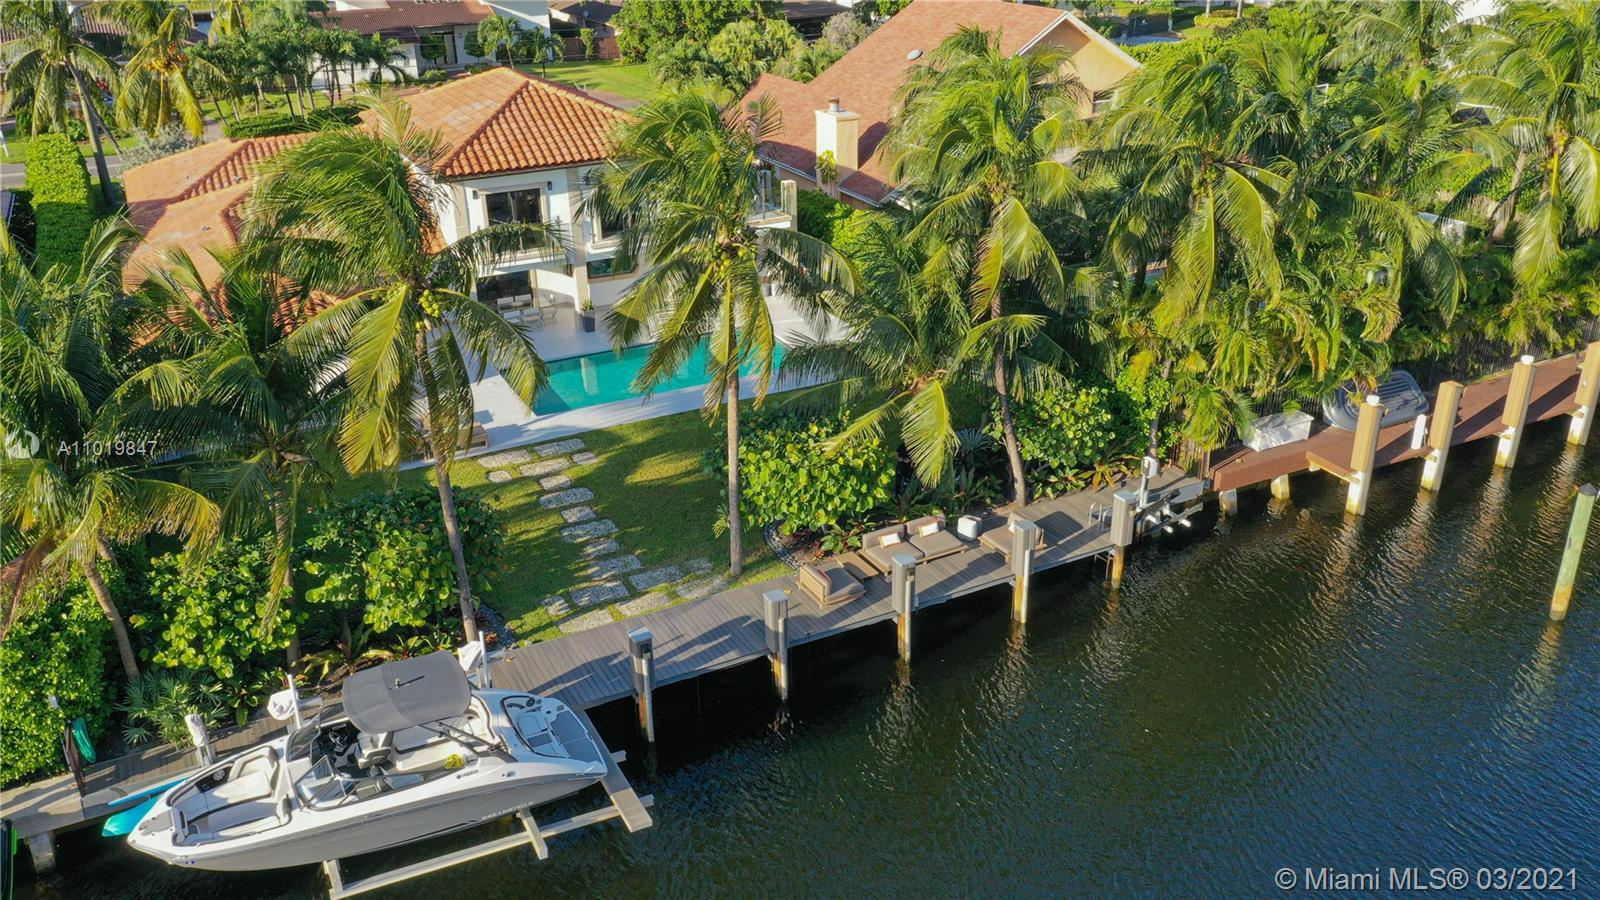 LIVE in paradise, ideal for boaters, with a new long dock, with 3 lifts for yachts. jet skis and pad